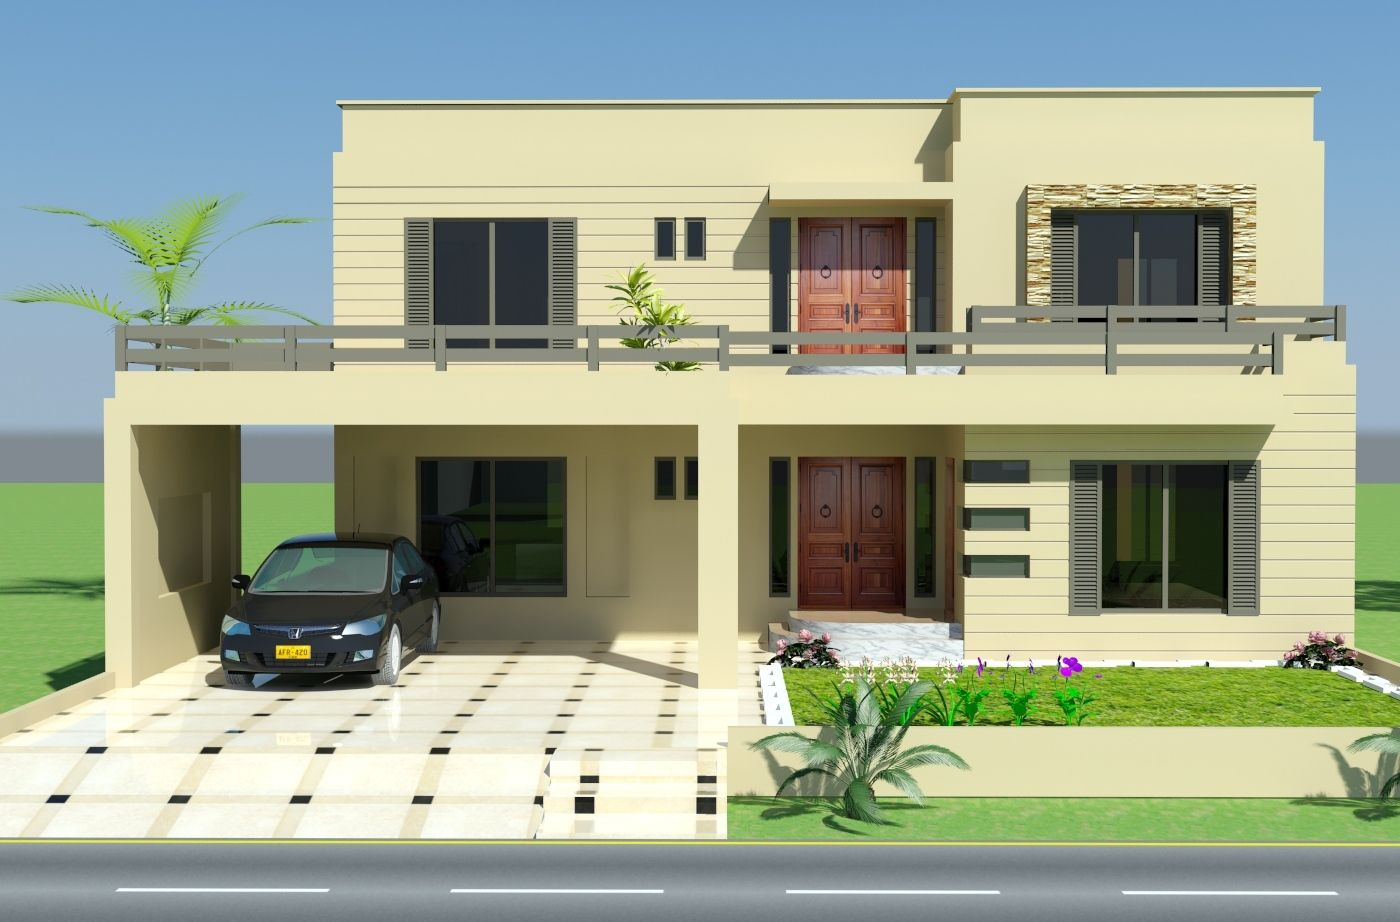 Exterior house design front elevation mi futura casa for Exterior housing design